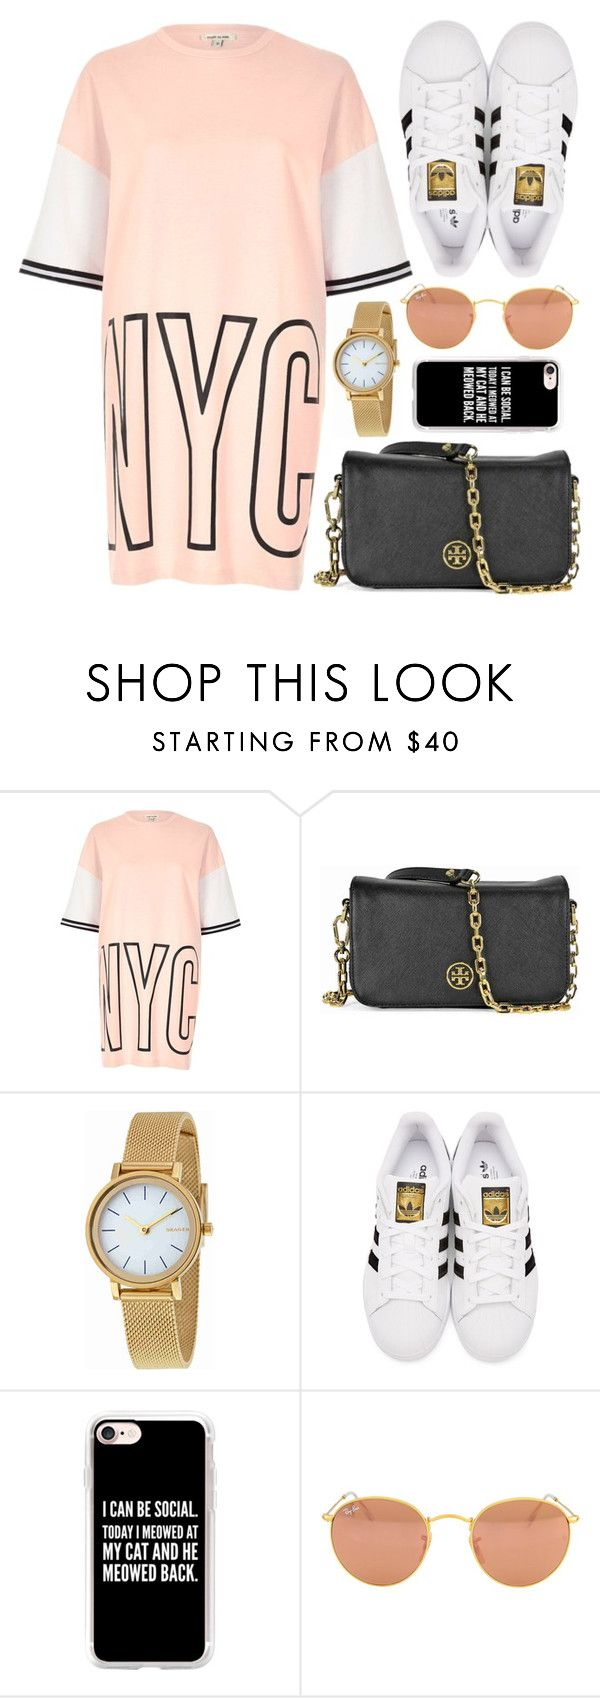 """""""NYC"""" by monmondefou ❤ liked on Polyvore featuring River Island, Tory Burch, Skagen, adidas Originals, Casetify and Ray-Ban"""